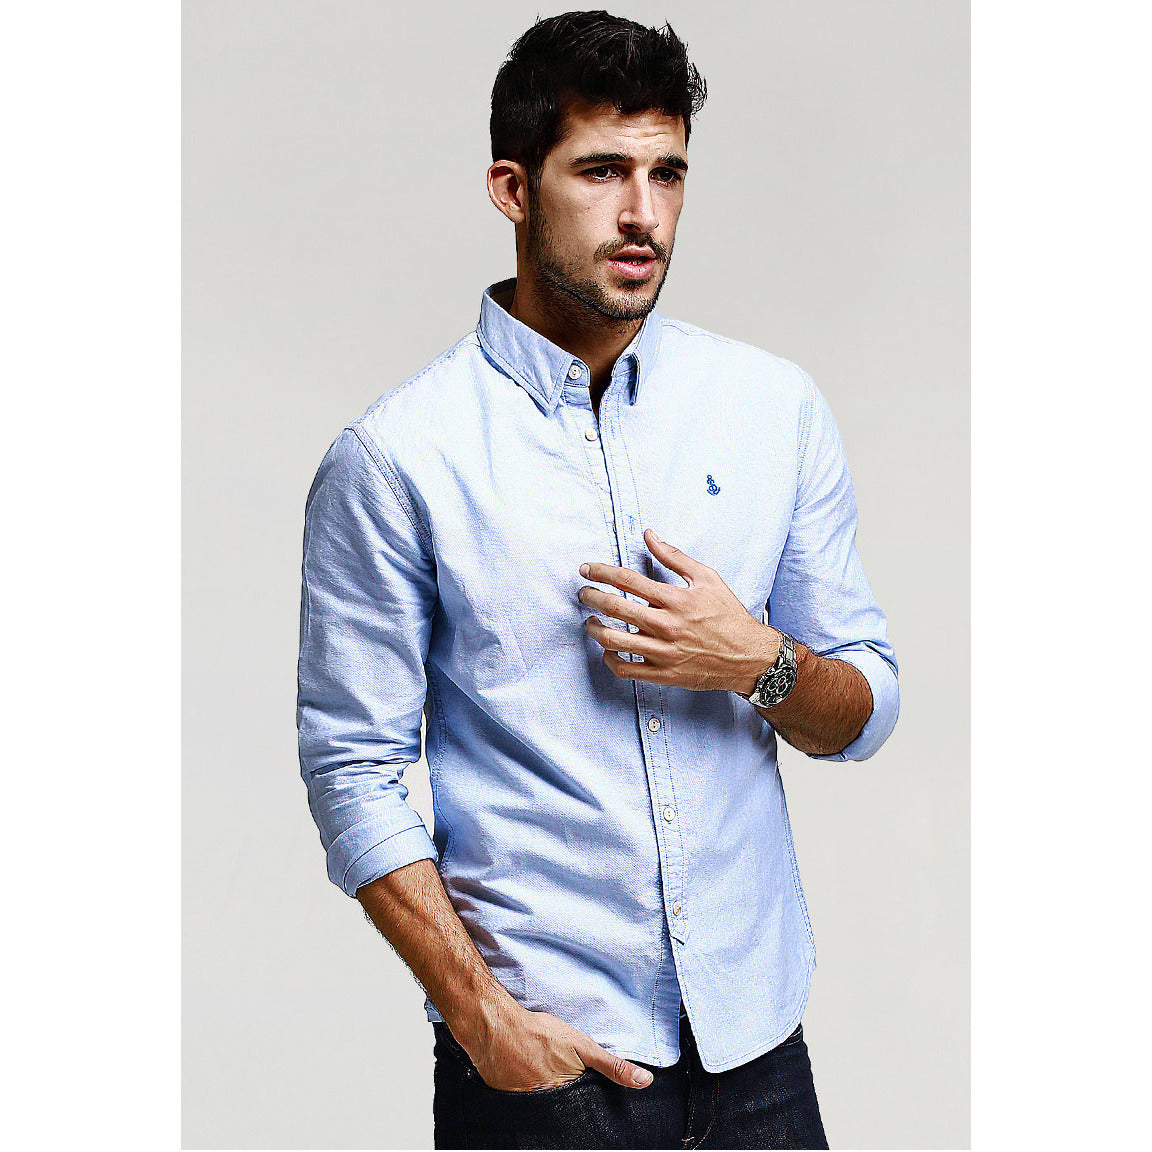 Julian Long Sleeve Blue Shirt - Haberfasher